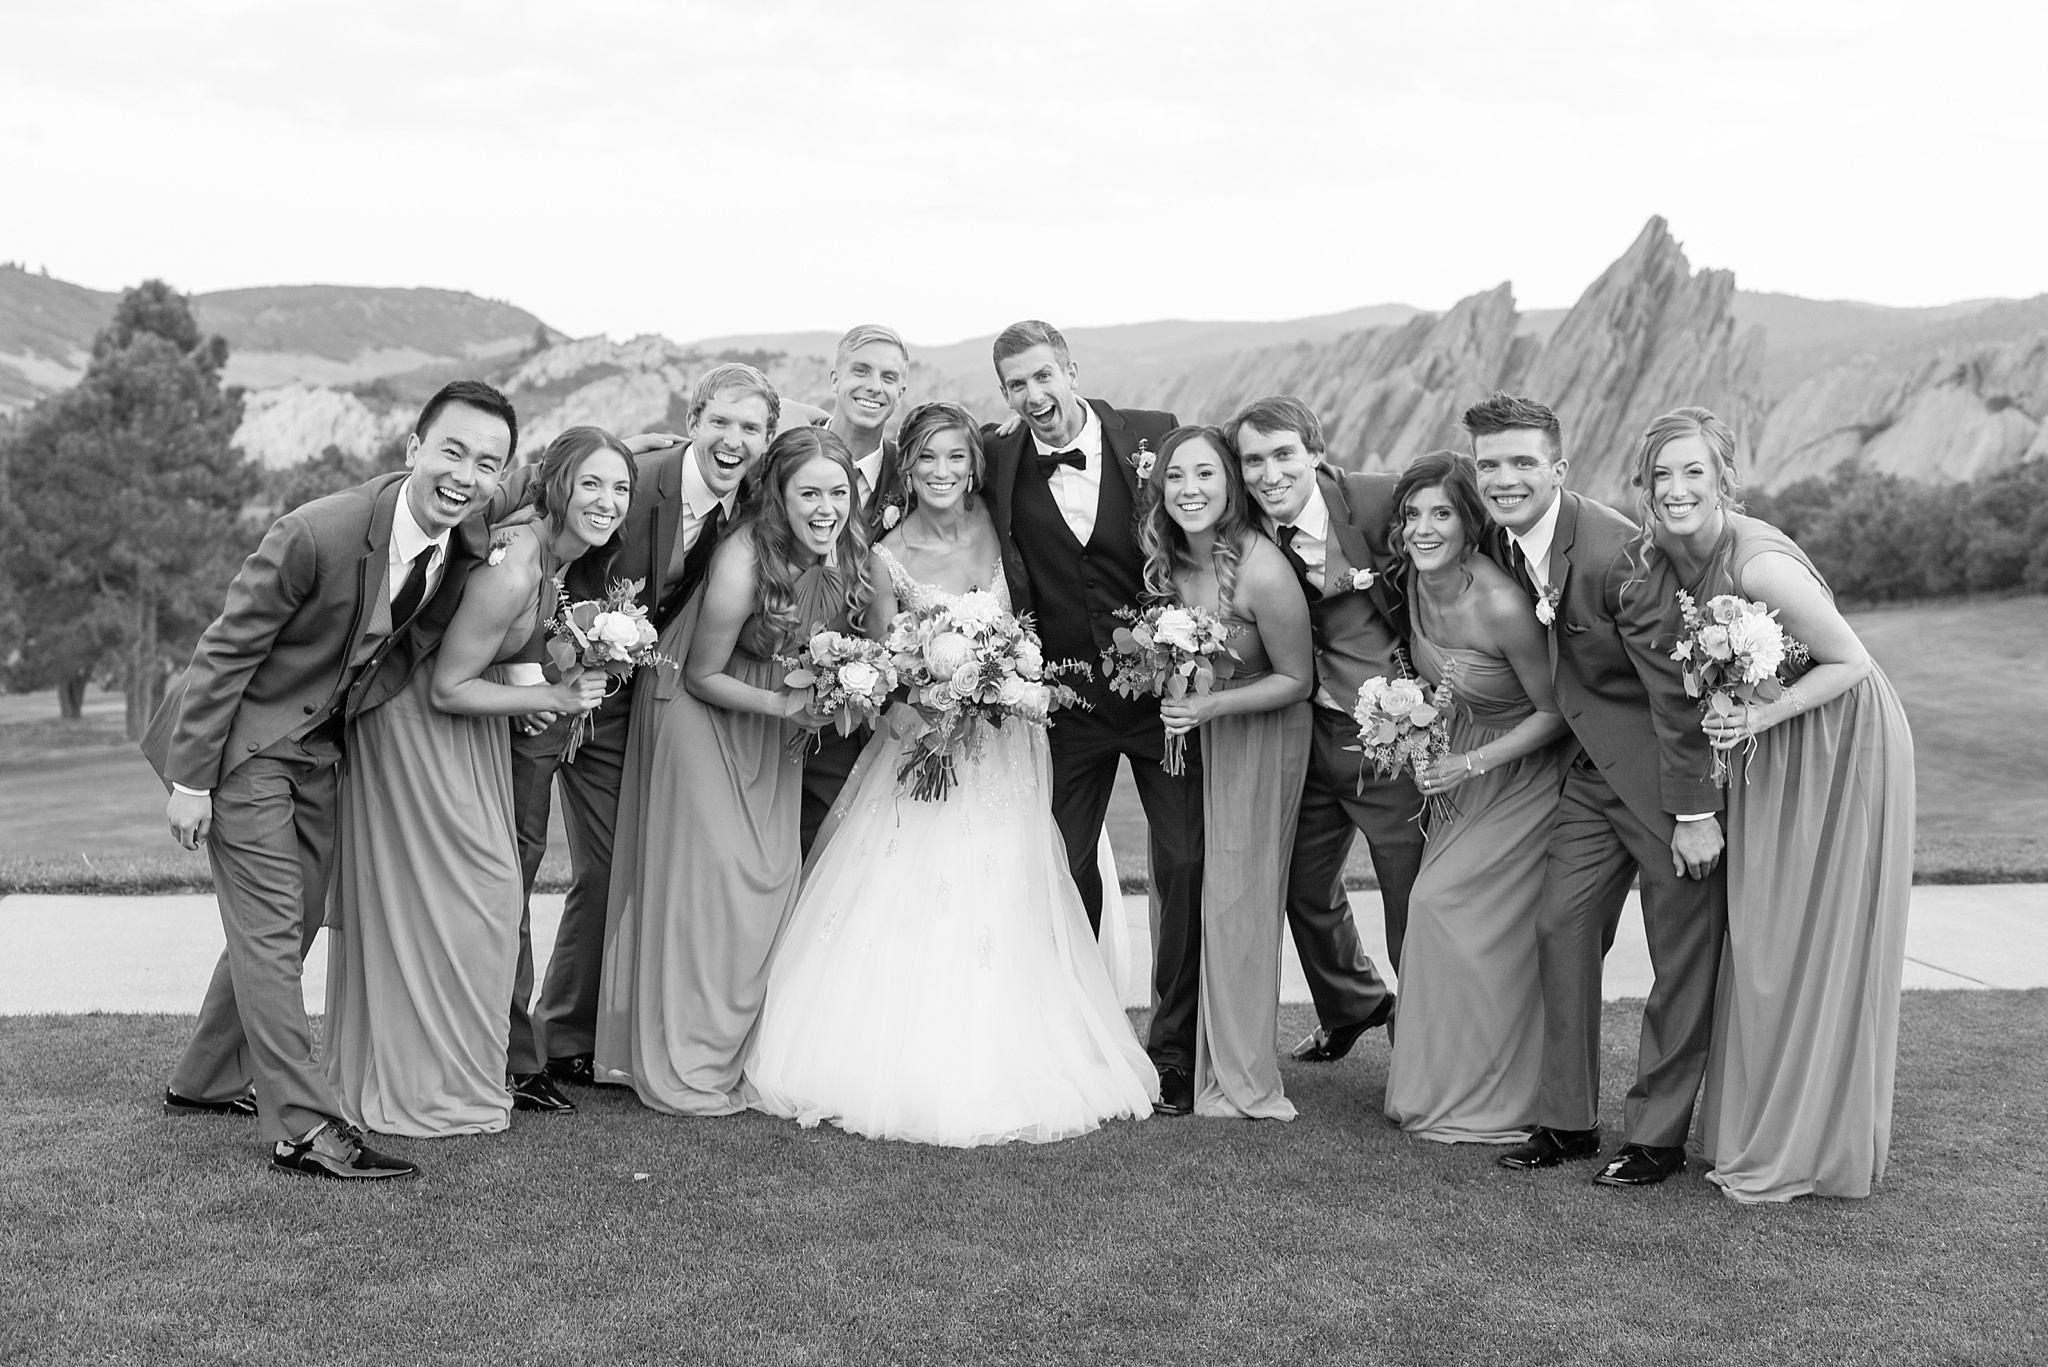 Kirsten & Dylan's Wedding at Arrowhead Golf Course by All Digital Photo & Video, Arrowhead Golf Course Wedding, Arrowhead Golf Course, Denver Wedding Photography, Colorado Wedding Photography, Colorado Wedding, Rocky Mountain Wedding, Golf Course Wedding, Denver's Best Wedding Photography, Wedding Sites & Services Magazine Cover